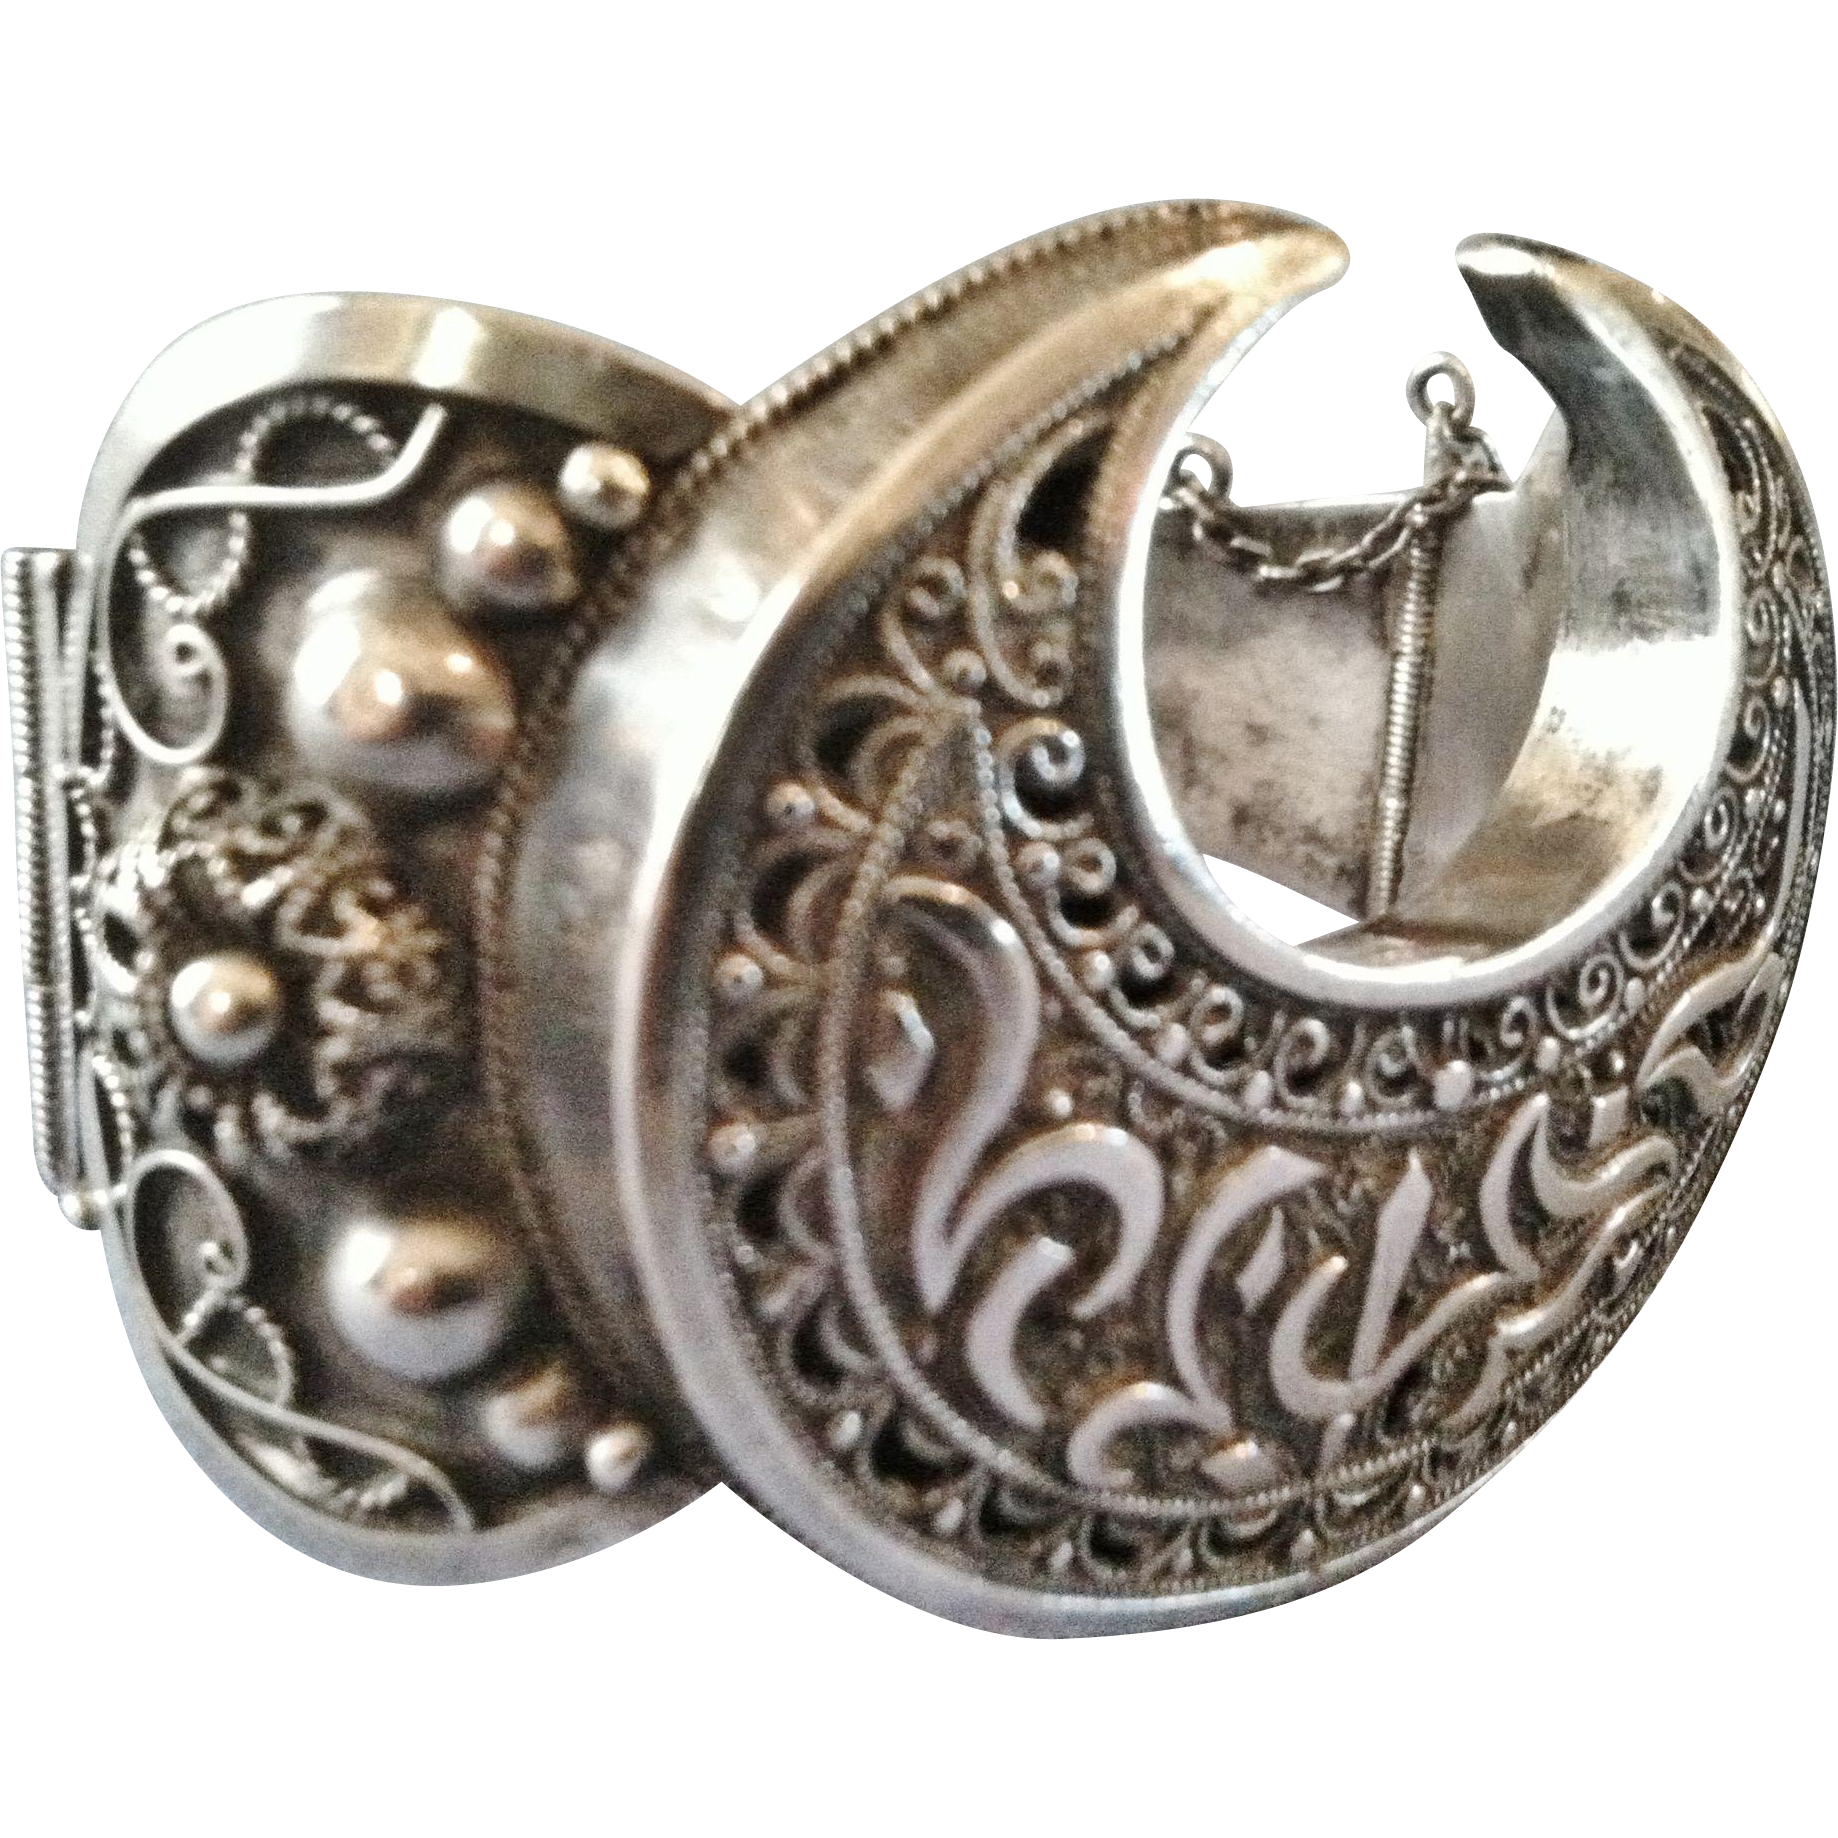 Silver Moroccan or Algerian Bracelet, Filigree Work, Crescent Moon,CA.1920's, French Colonial